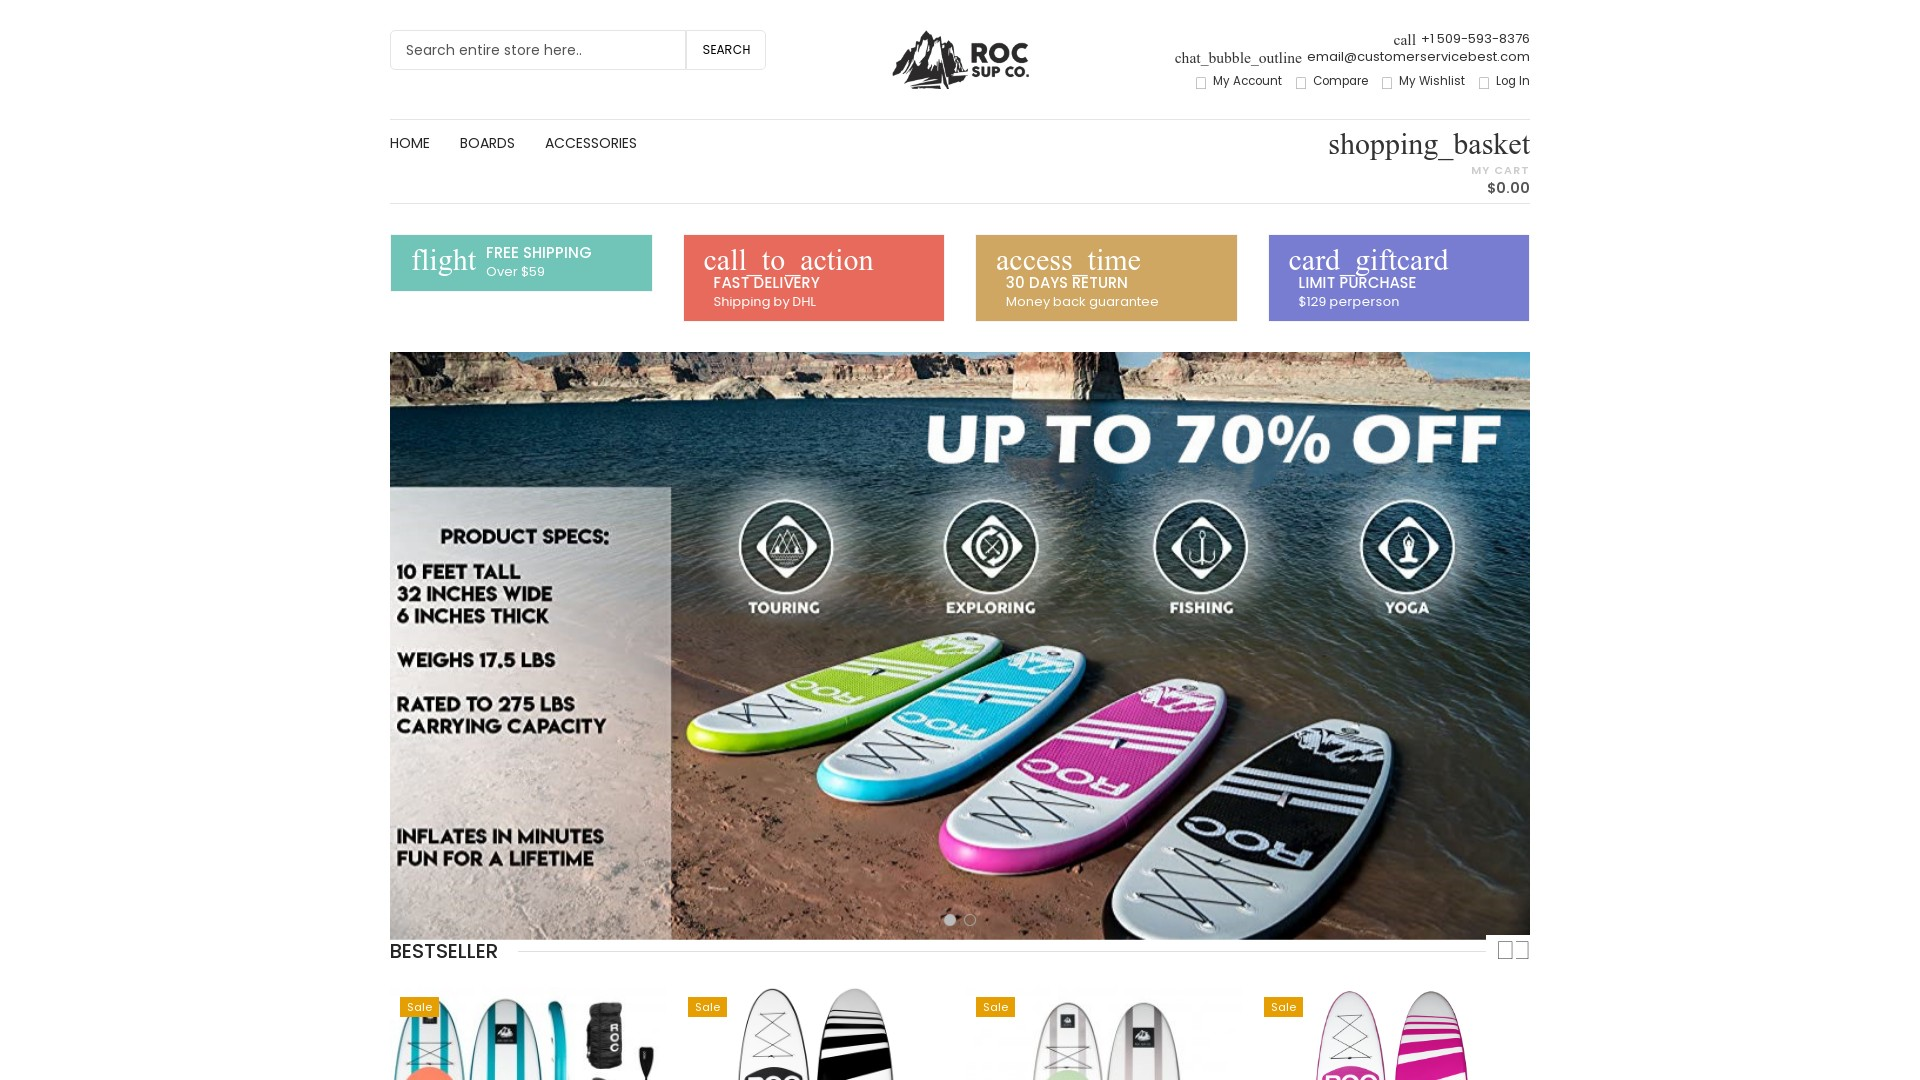 ROC SUP Co Scam - Fake Inflatable Paddle Board Stores